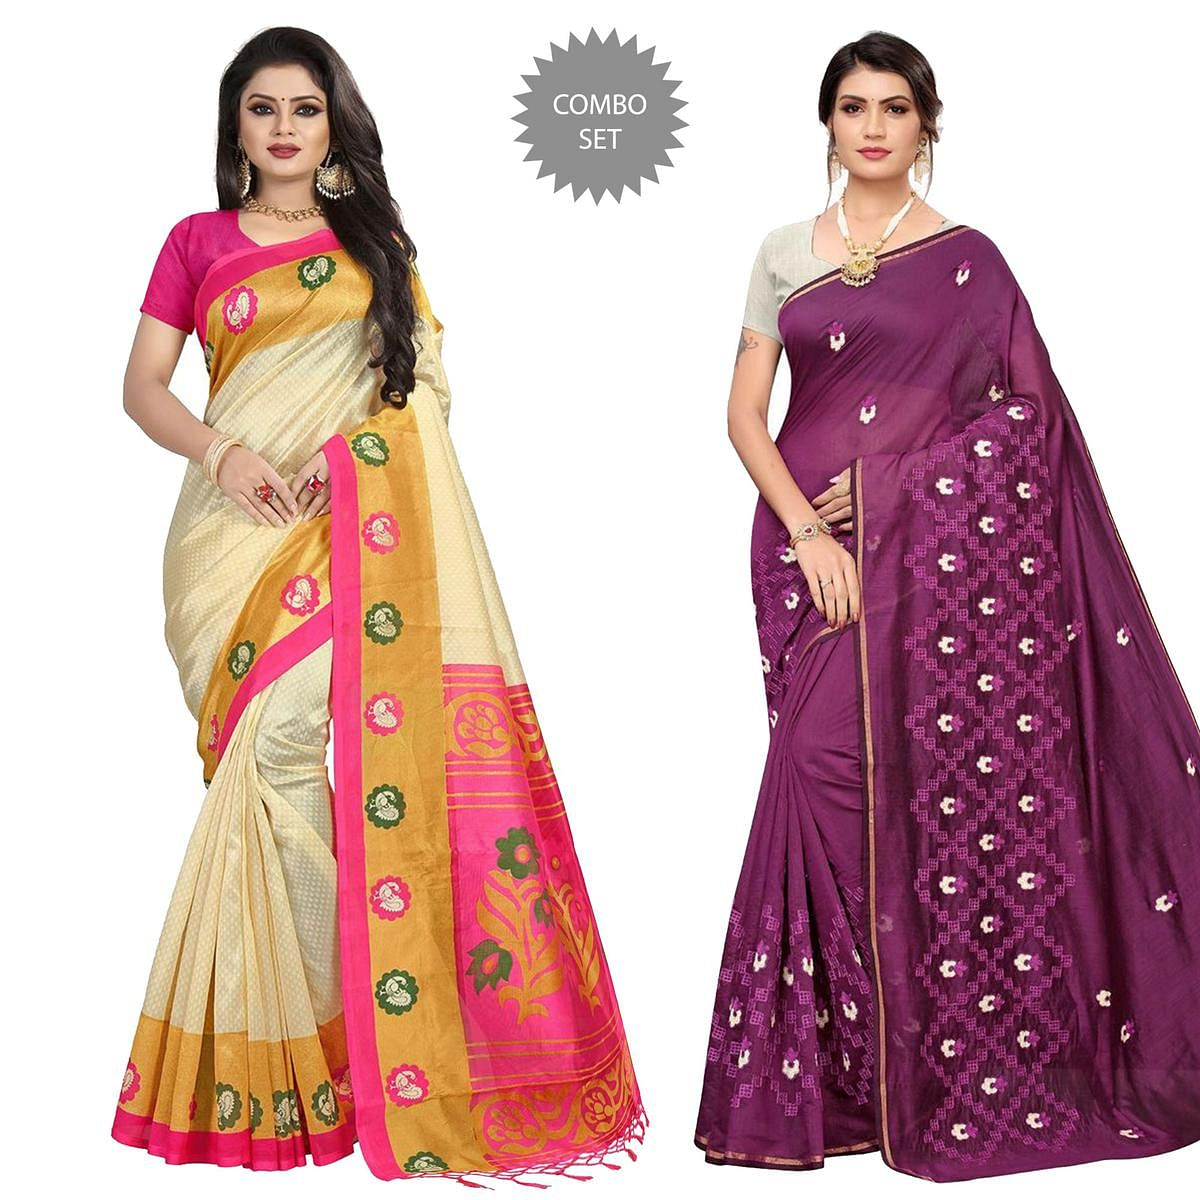 Imposing Printed-Embroidered Silk Saree - Pack of 2